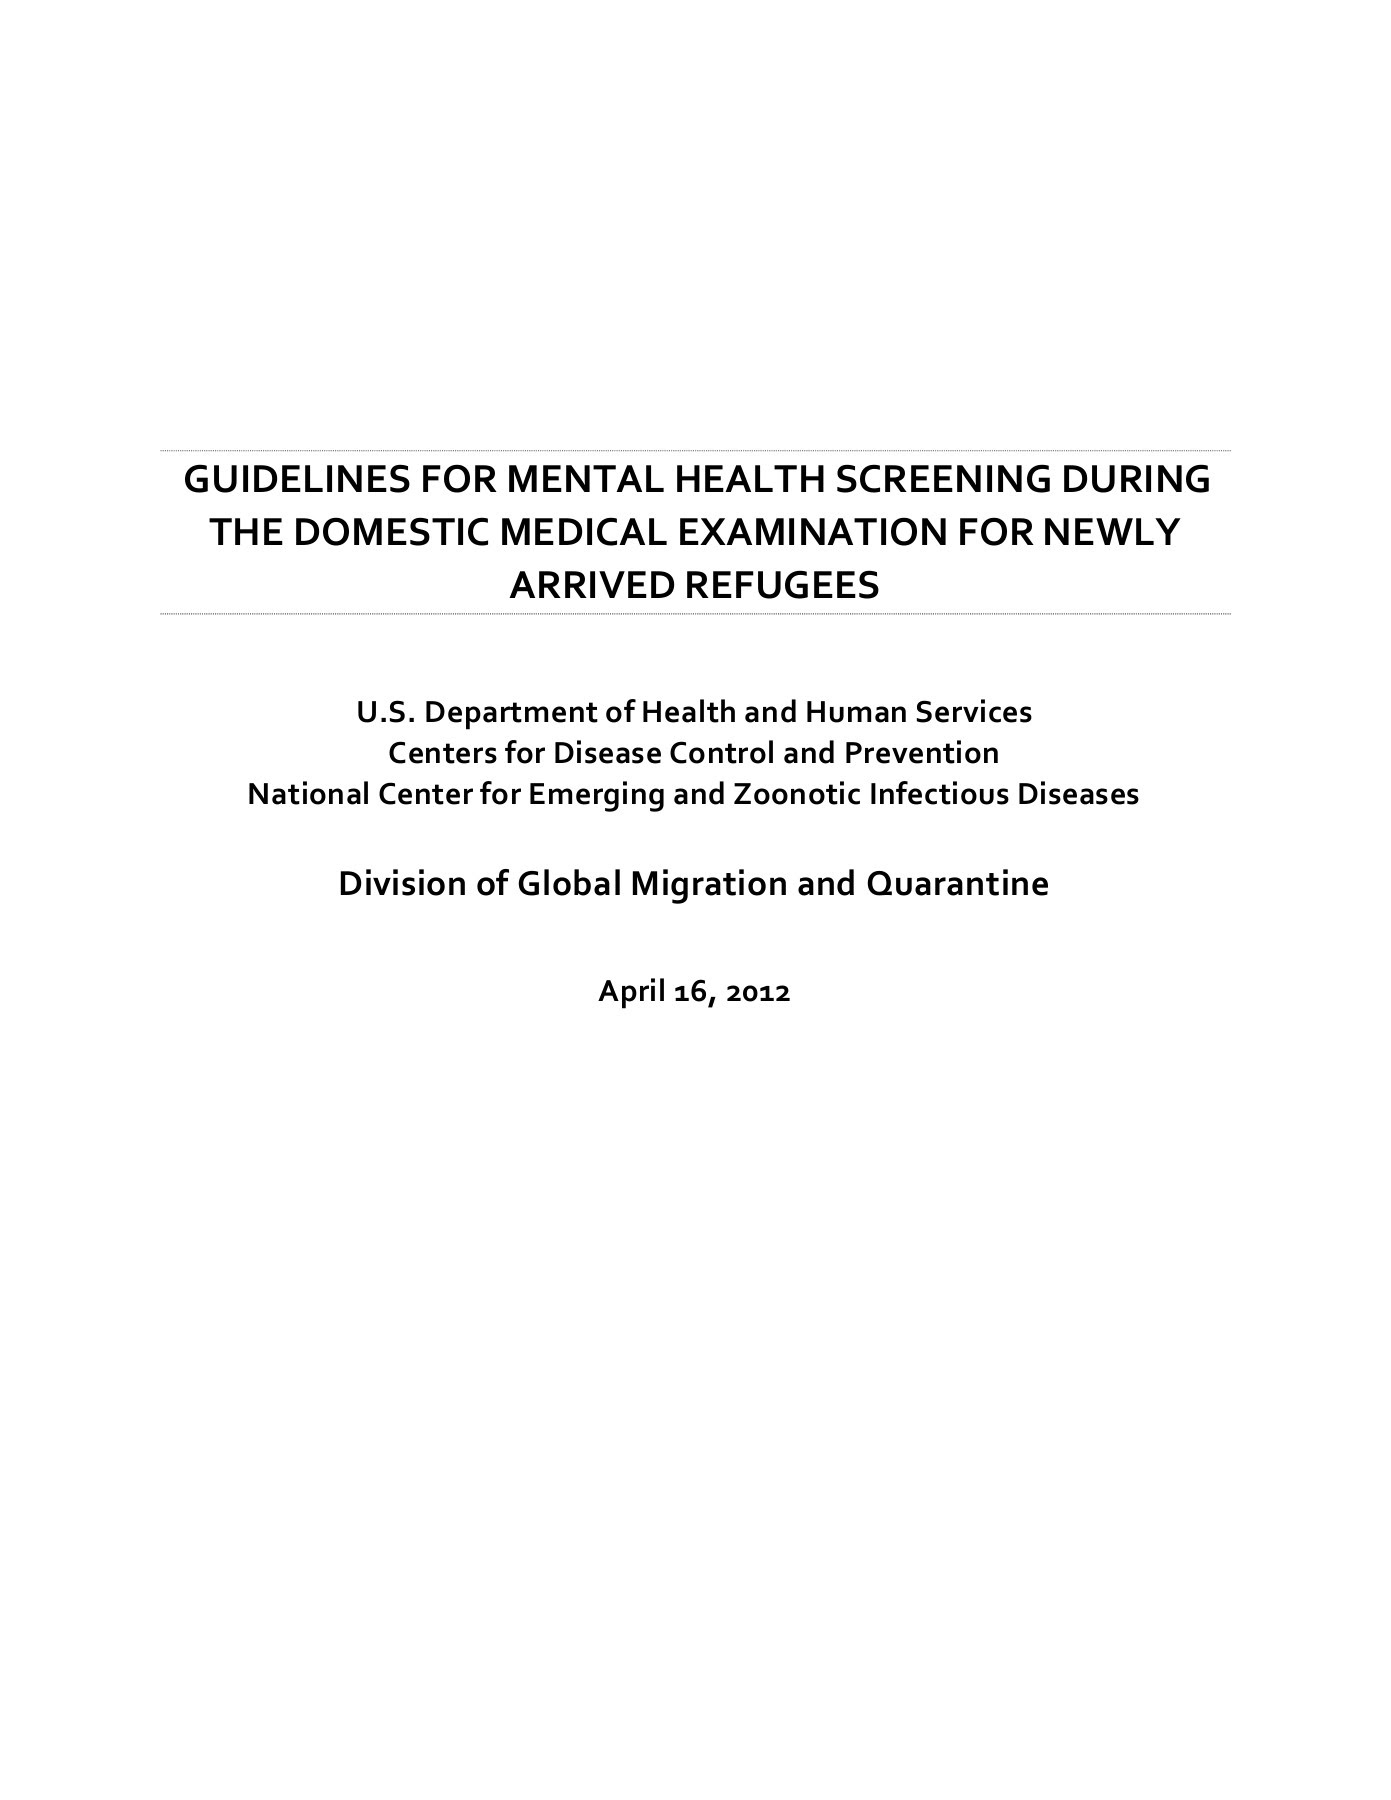 Guidelines For Mental Health Screening During The Domestic